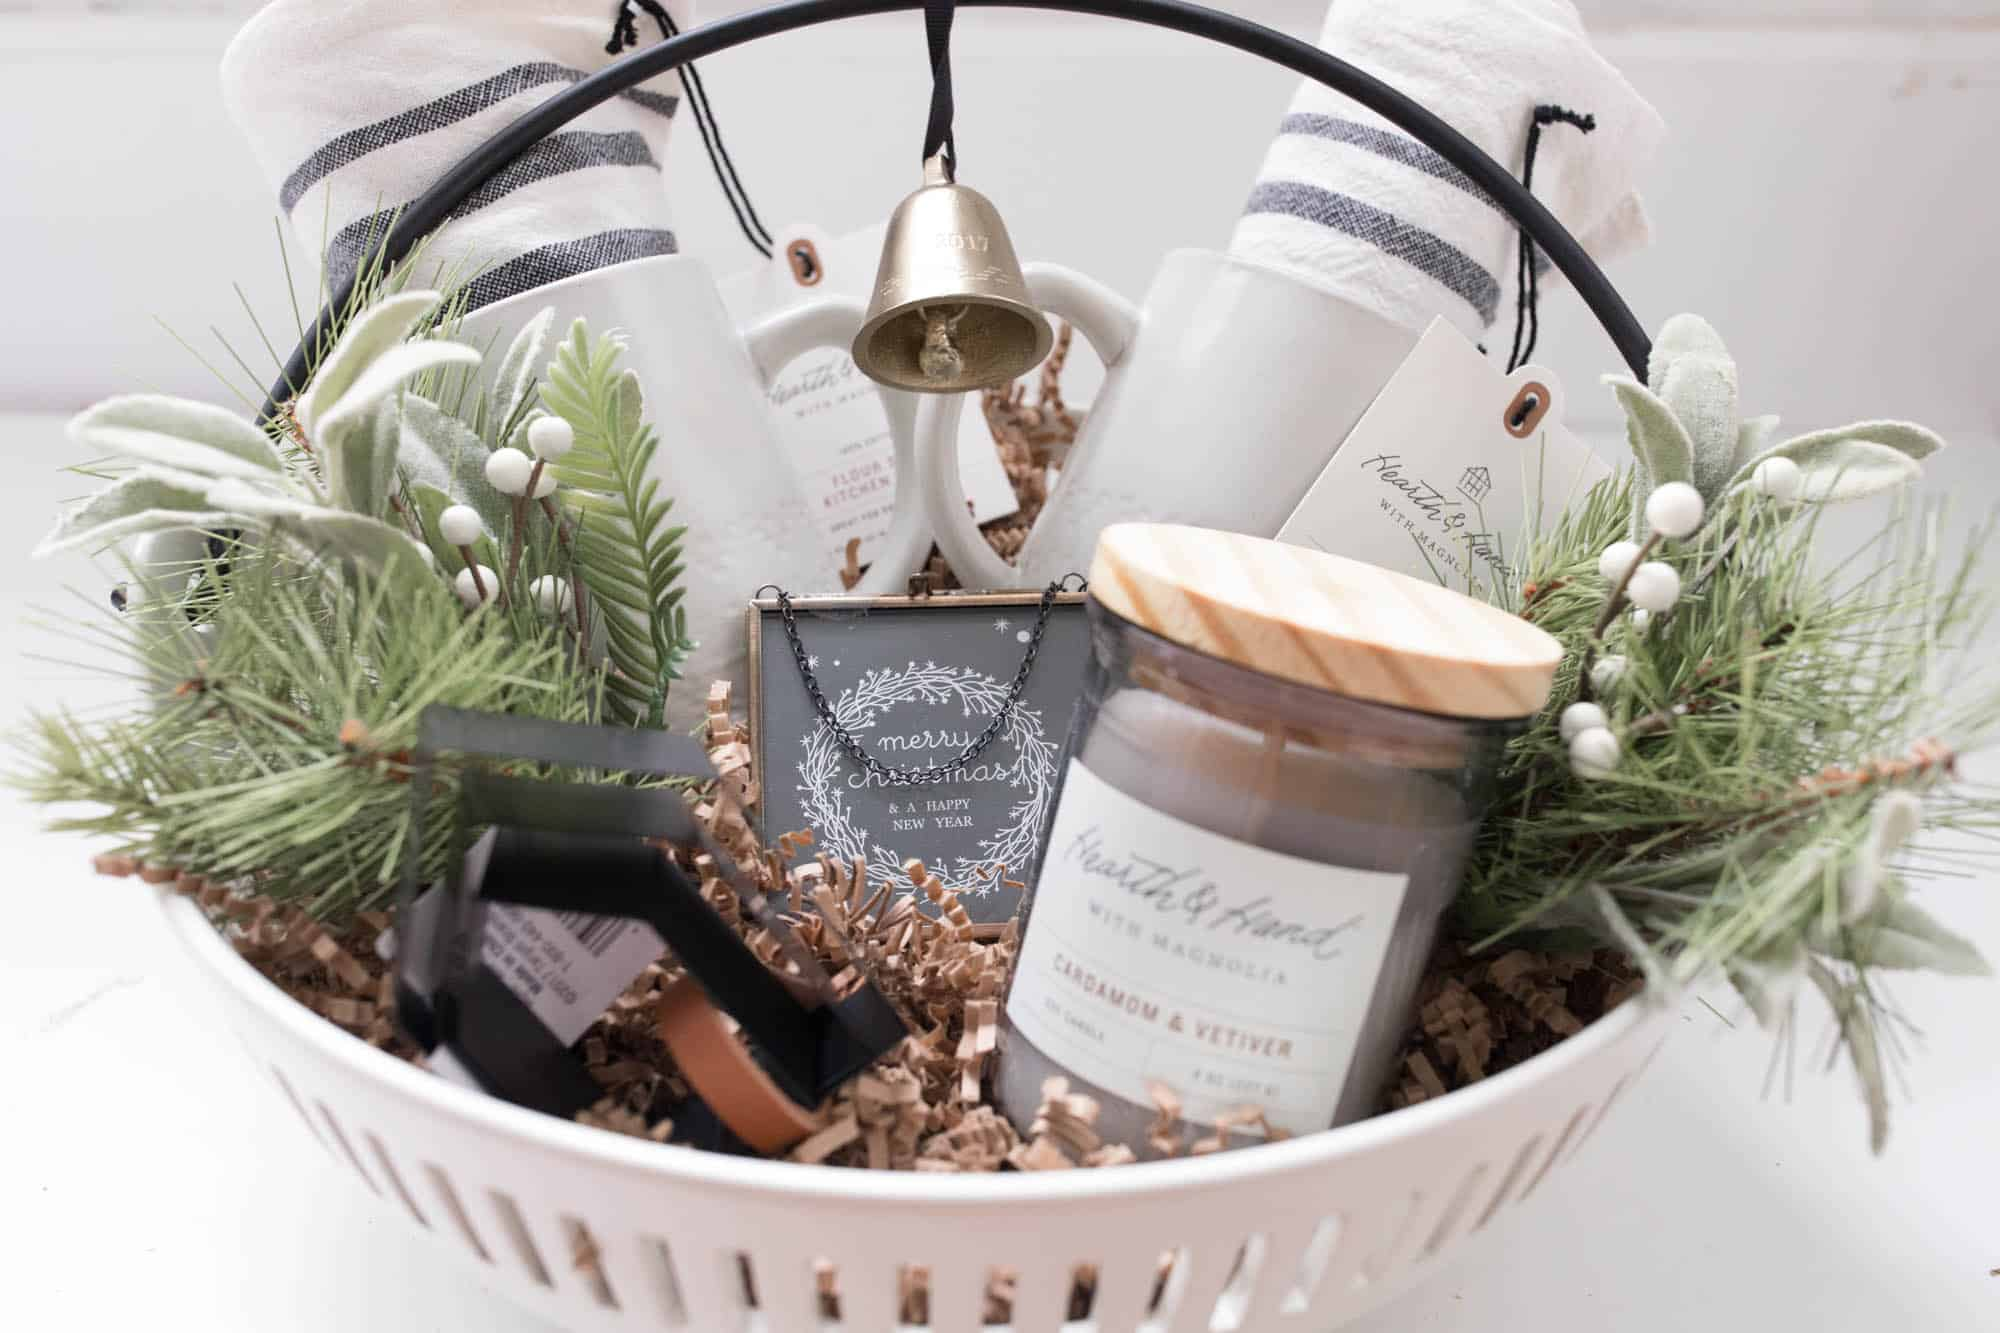 Hearth and hand gift basket gift guide for the farmhouse decor hearth and hand gift basket idea for the farmhouse decor lover on your list negle Image collections